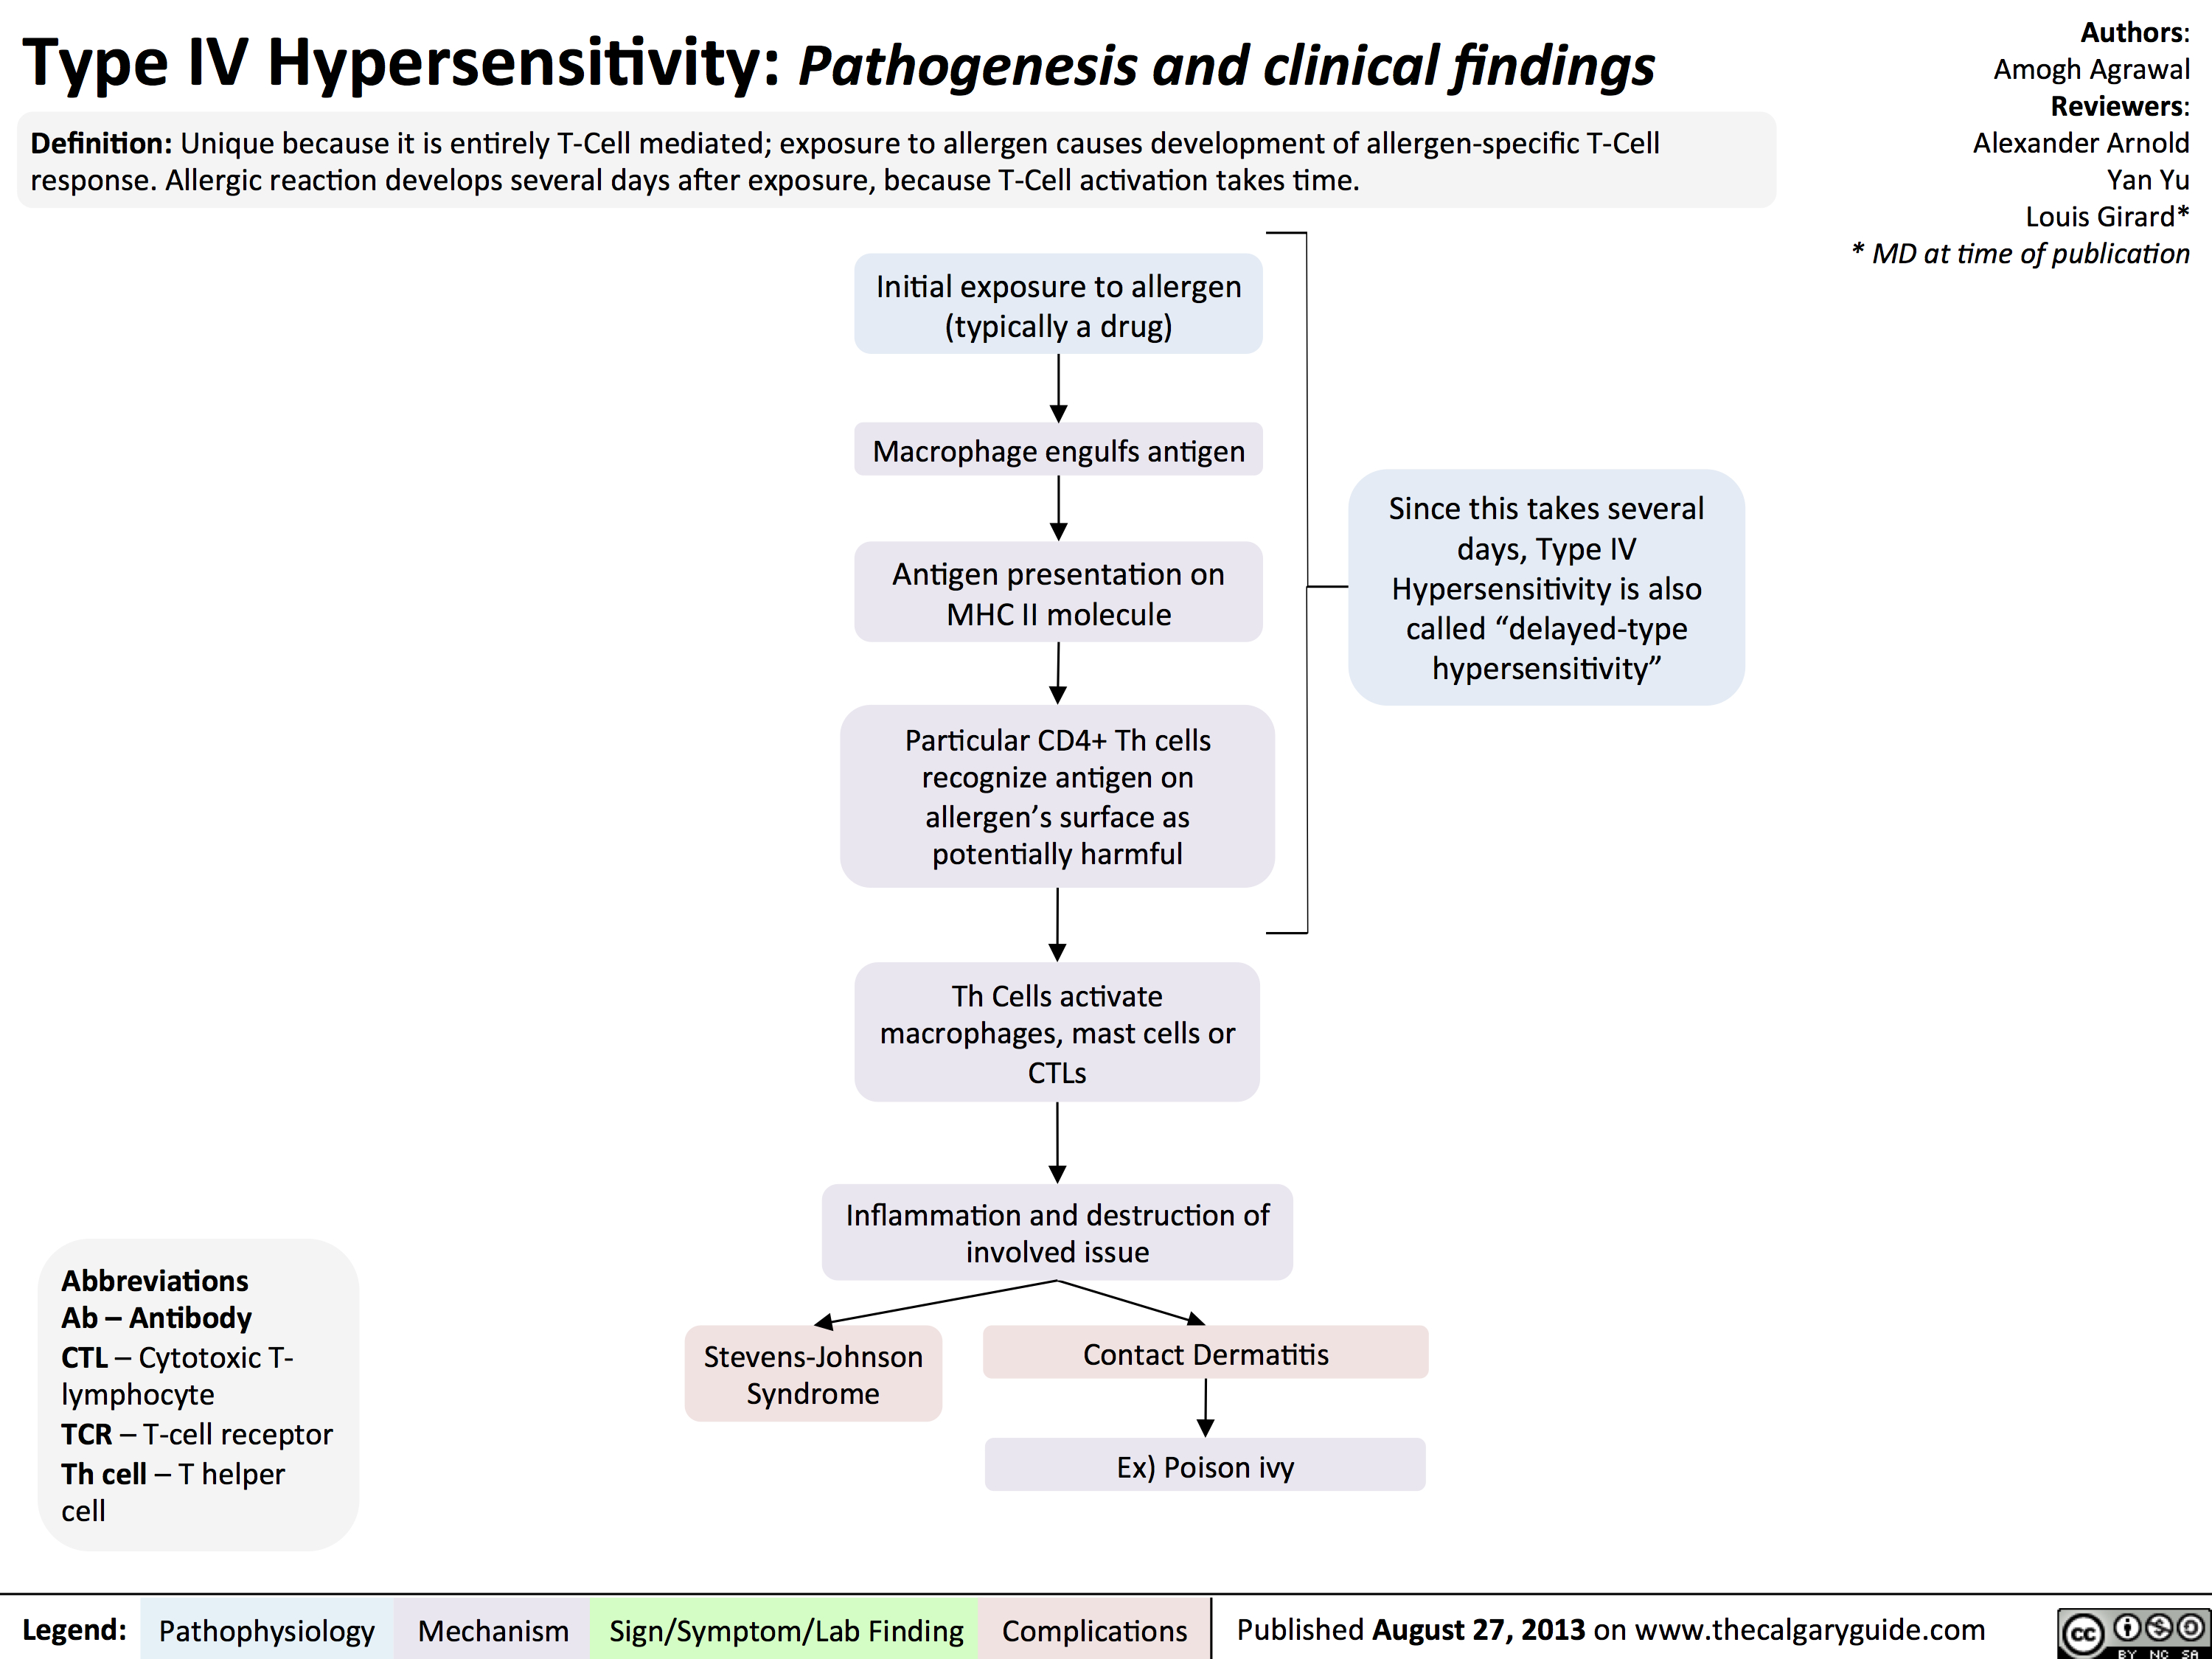 Type IV Hypersensitivity: Pathogenesis and clinical findings